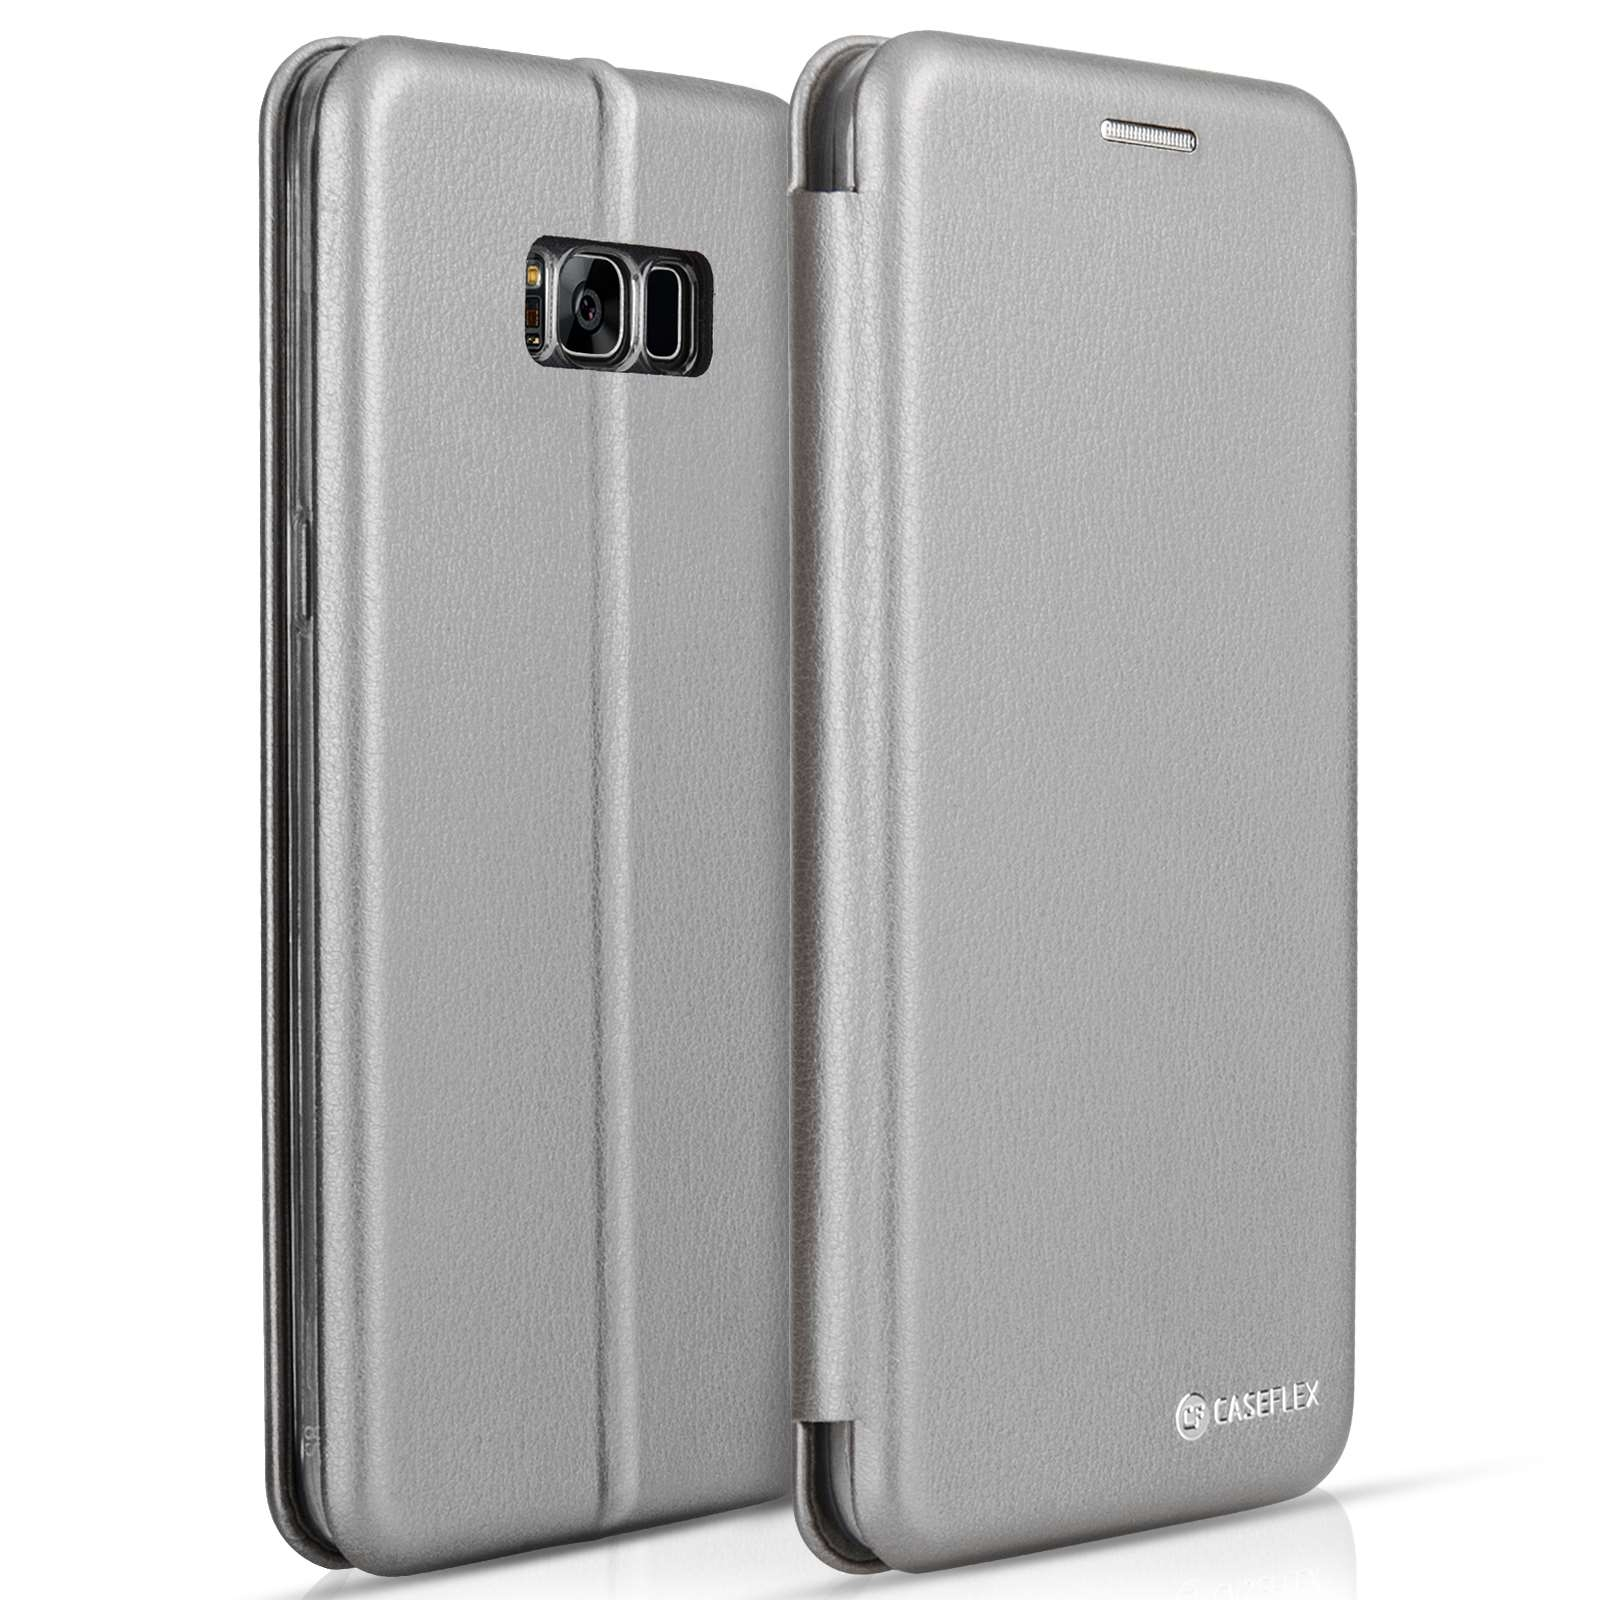 Caseflex Θήκη - Πορτοφόλι Samsung Galaxy S8 Plus - Grey (SA-EA09-Z644)